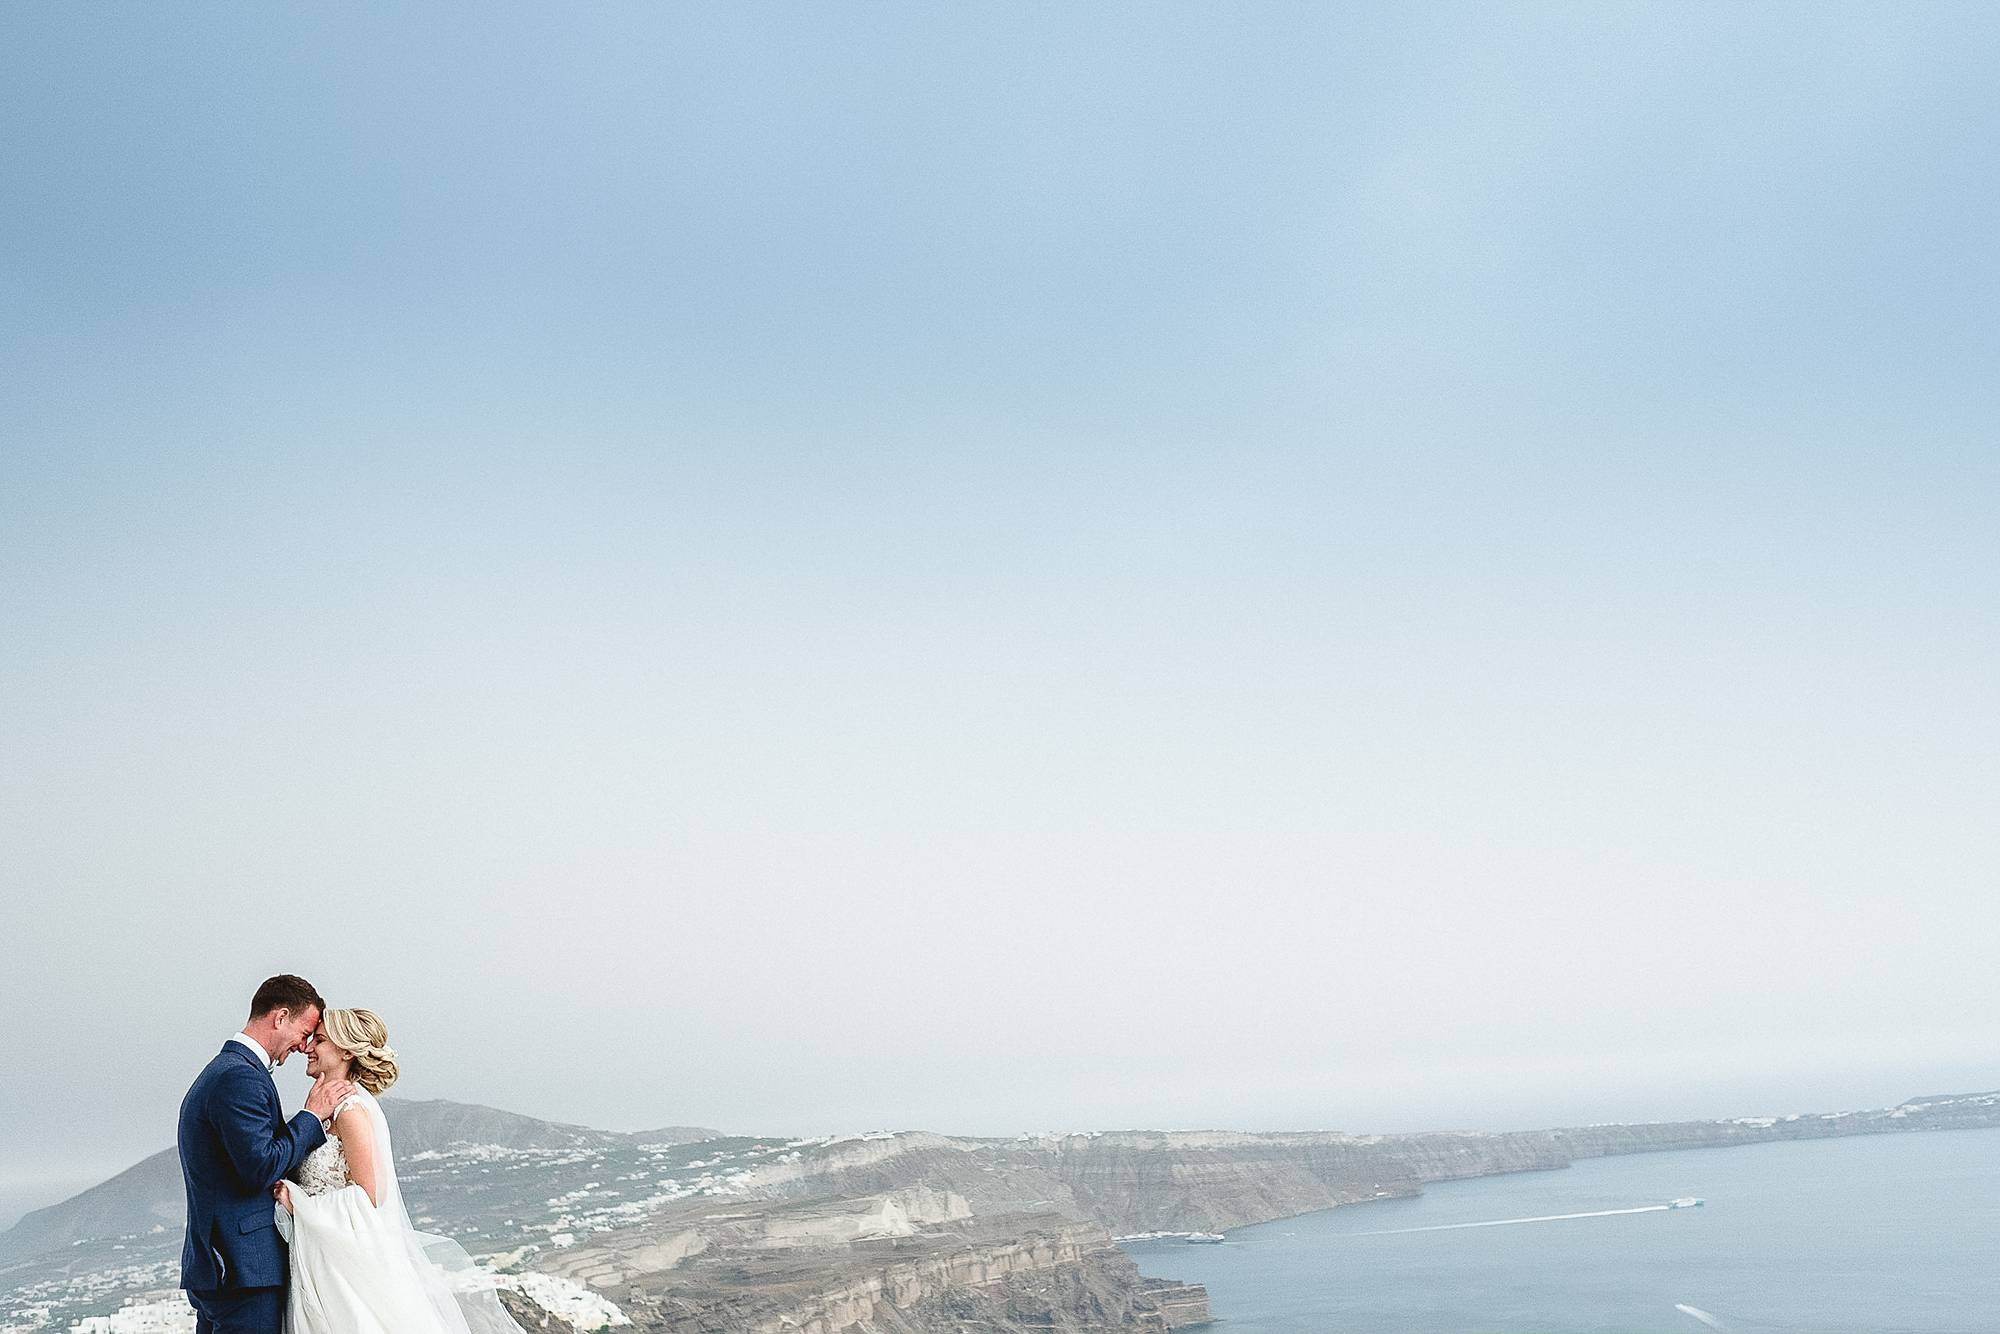 HANNAH & ELLIOTT'S DESTINATION WEDDING IN the scenic hills of SANTORINI greece